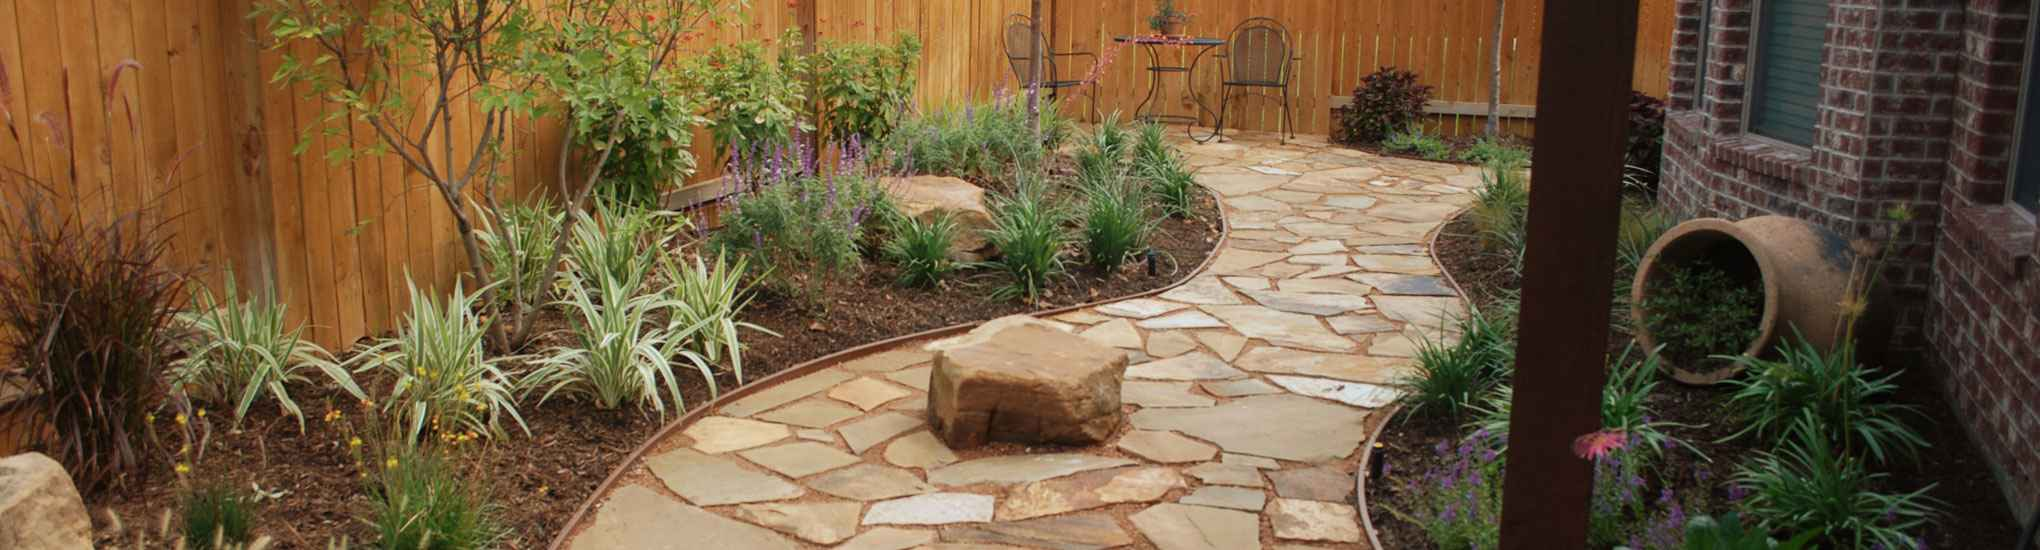 Sugar Land Landscape Flagstone Walkway Photo